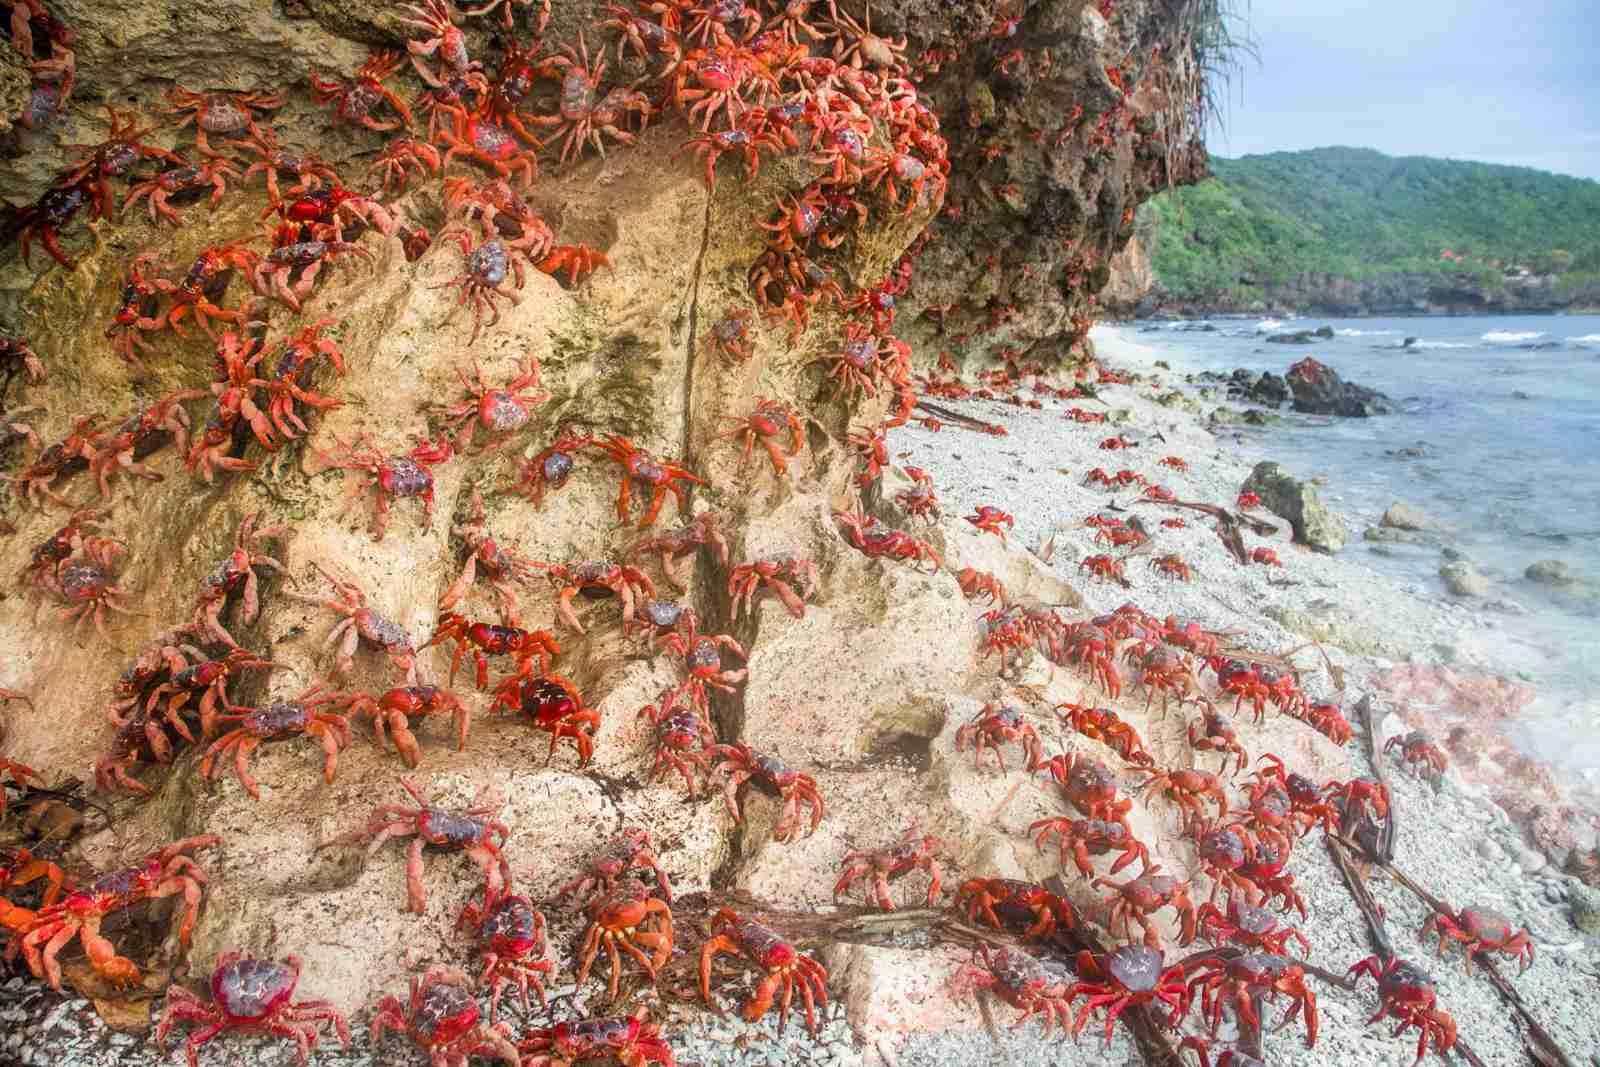 Crabs taking over at Ethel Beach on Christmas Island. (Photo by Raphael Bick via Unsplash)